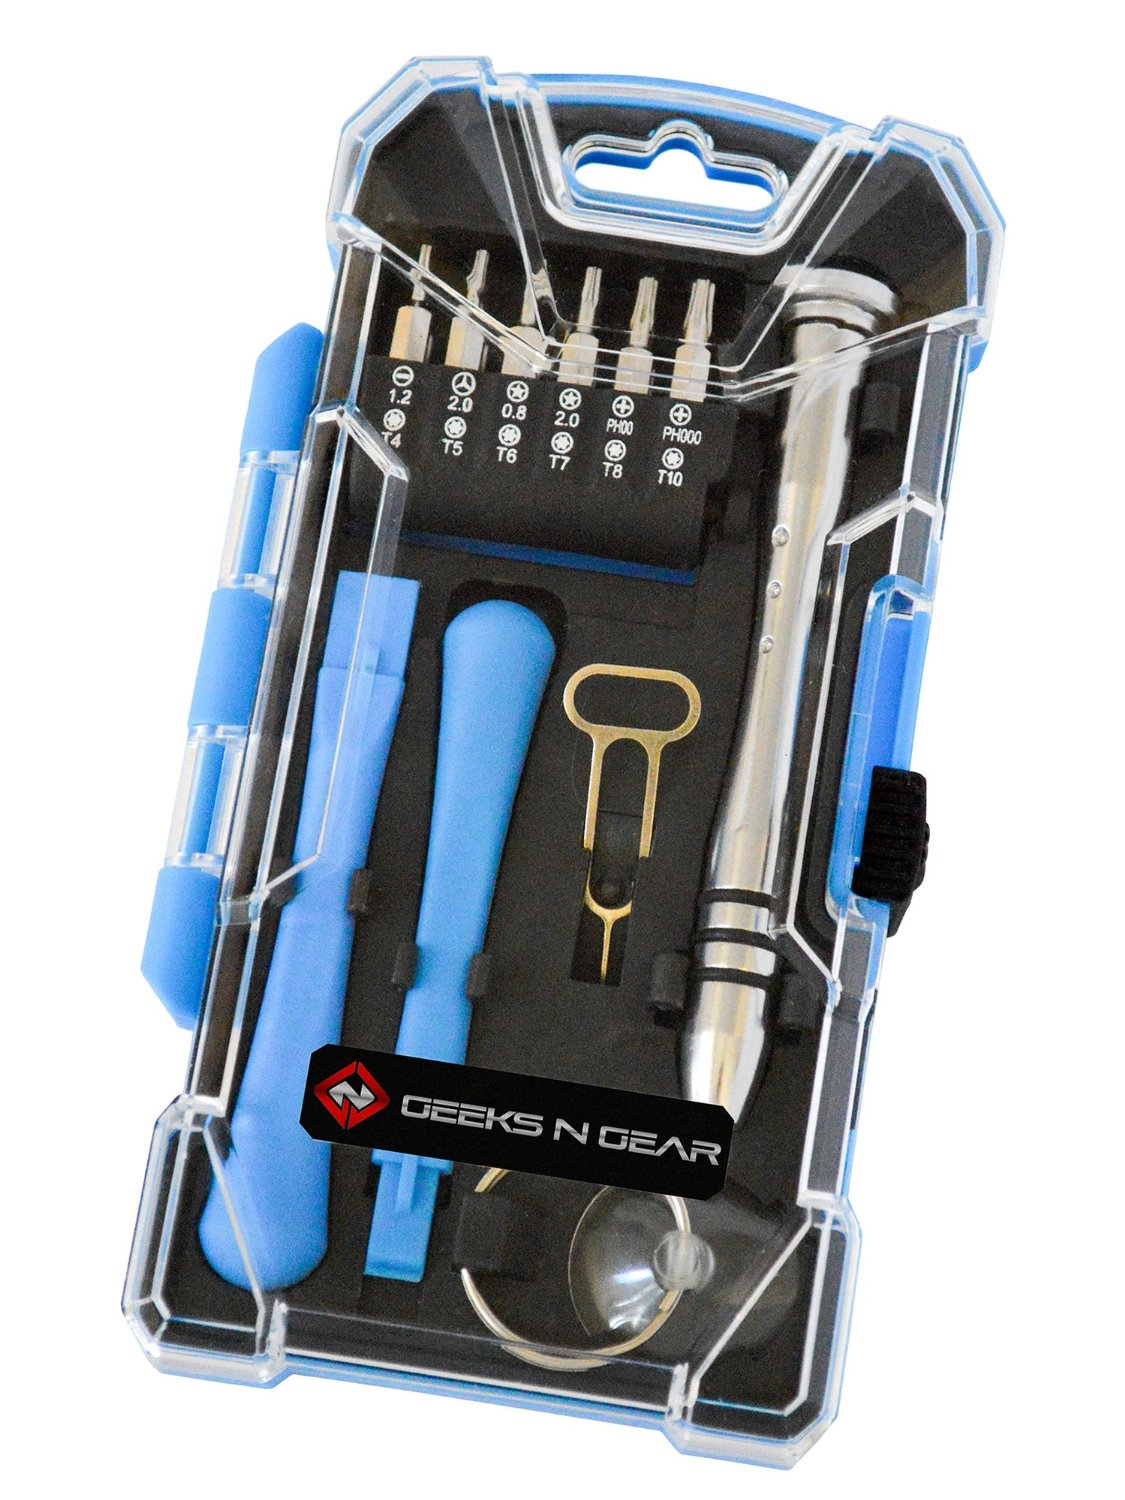 KIT DE REPARACION PARA CELULARES 17 EN 1 iPhone/Galaxy/iPad/Note/Tab/Tablets